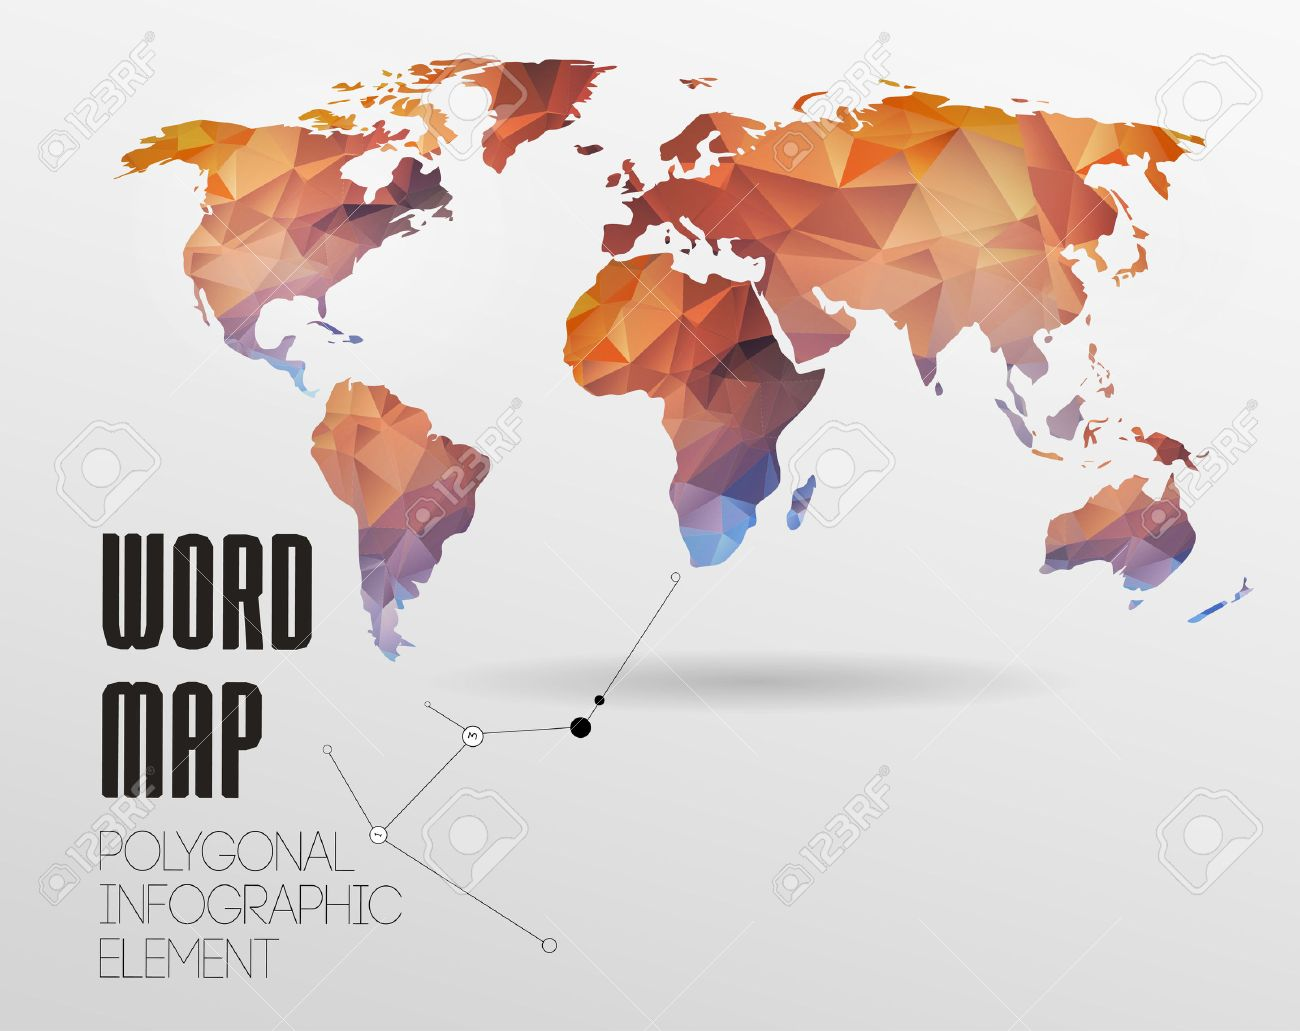 World map background in polygonal style vector background royalty vector world map background in polygonal style vector background gumiabroncs Images